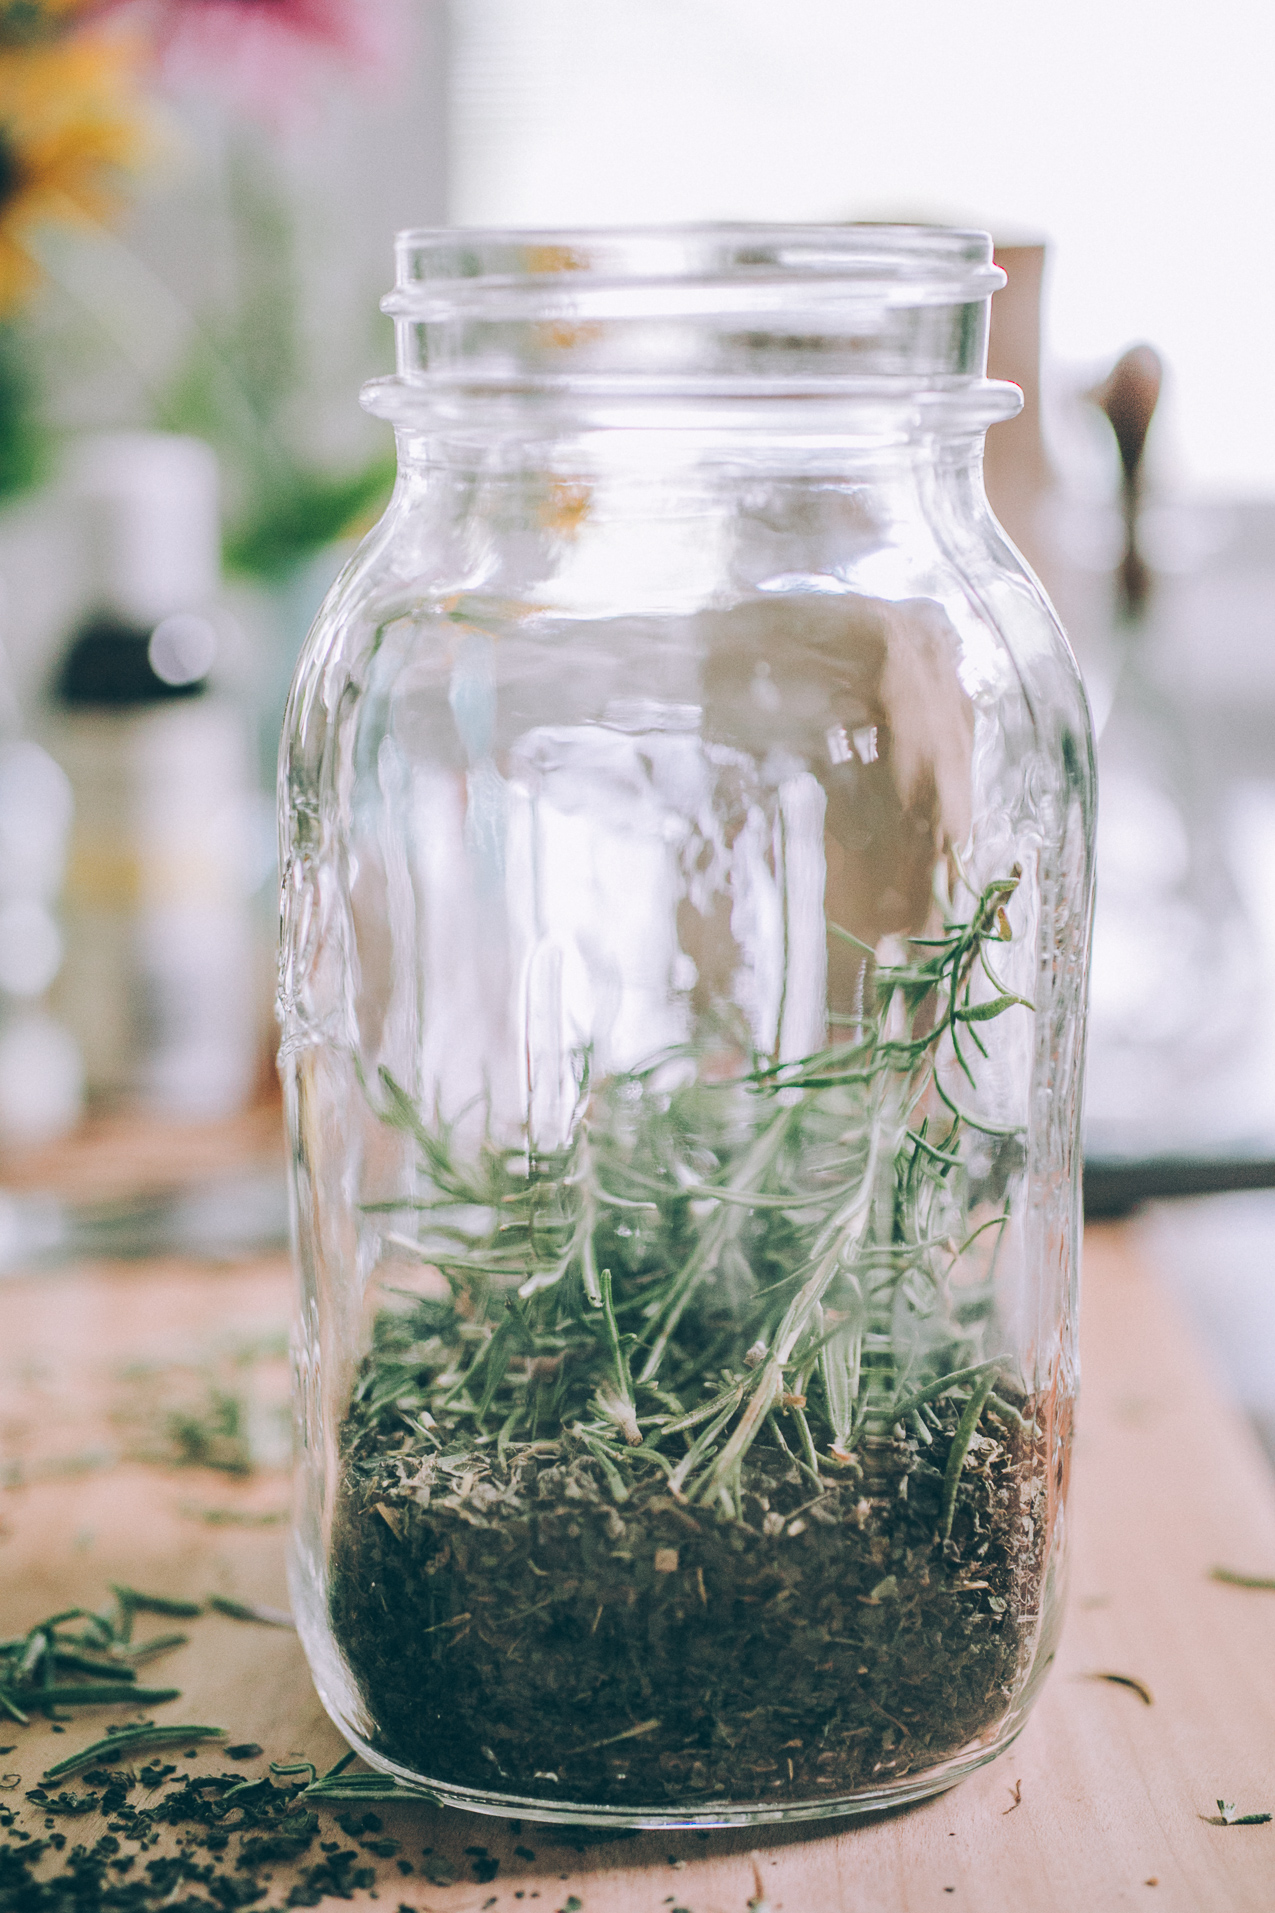 Simple Herb Infused Culinary Oils | Ginger Tonic Botanicals